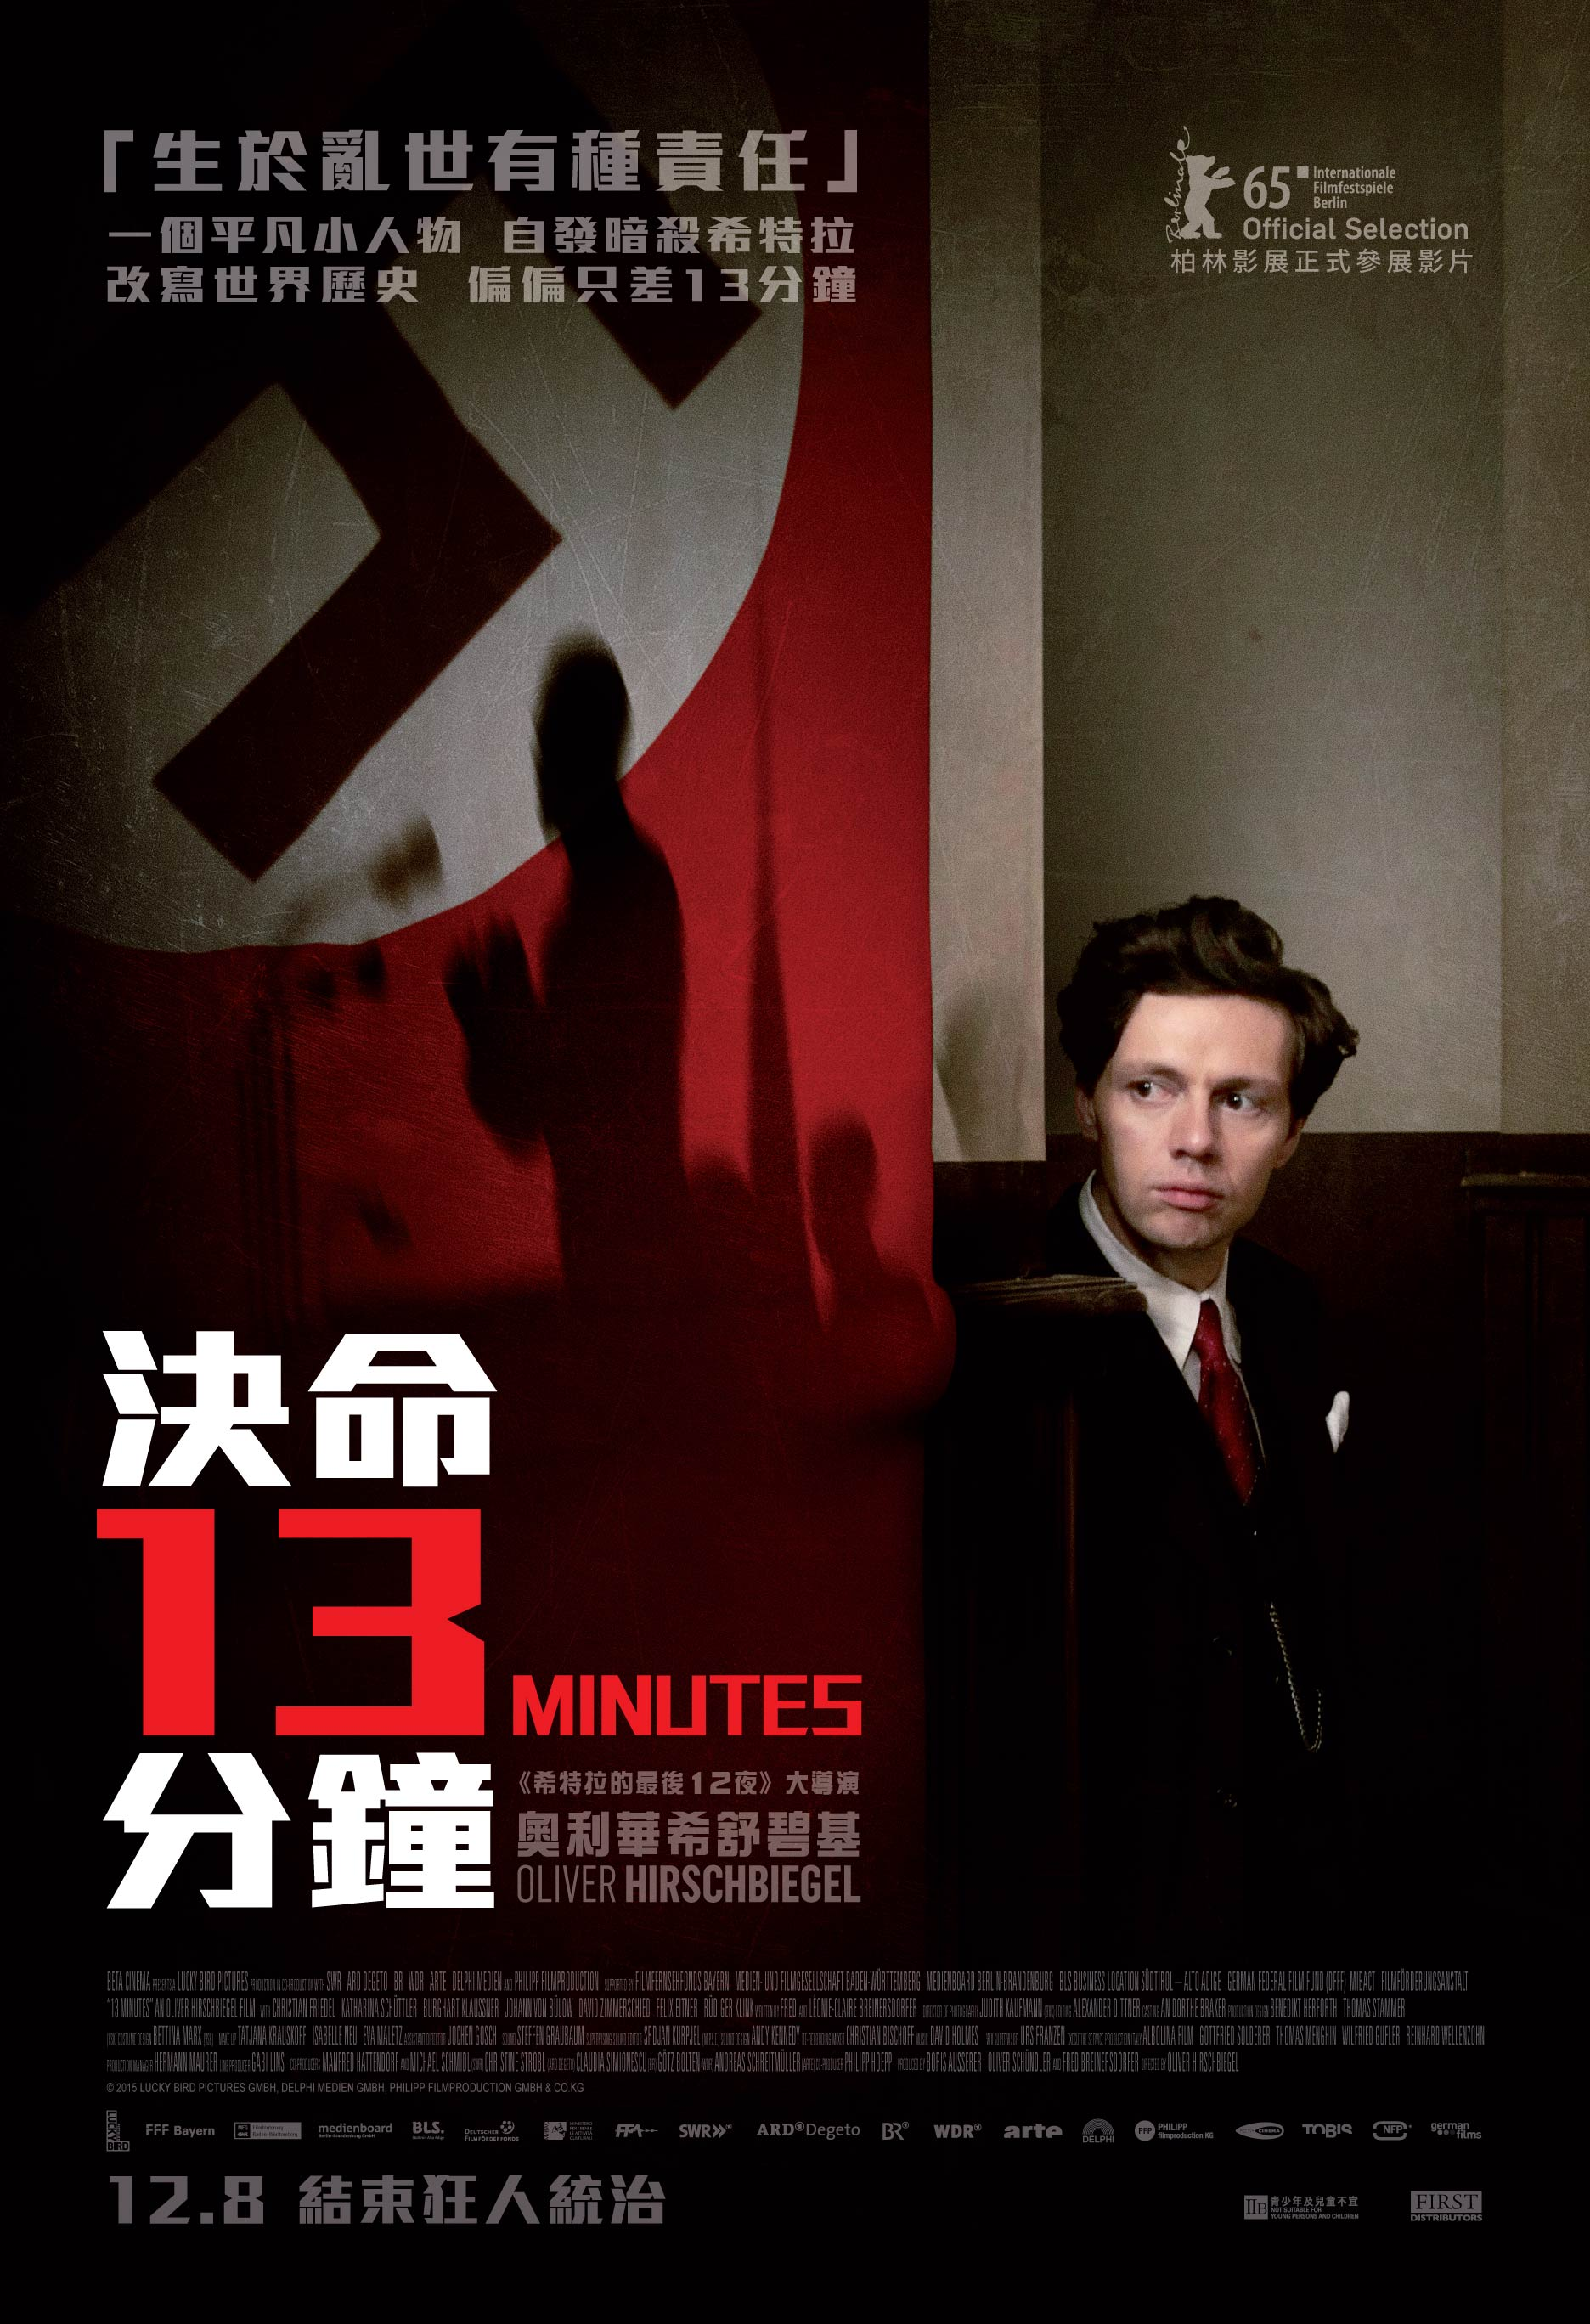 13-minutes-hk-official-poster.jpg